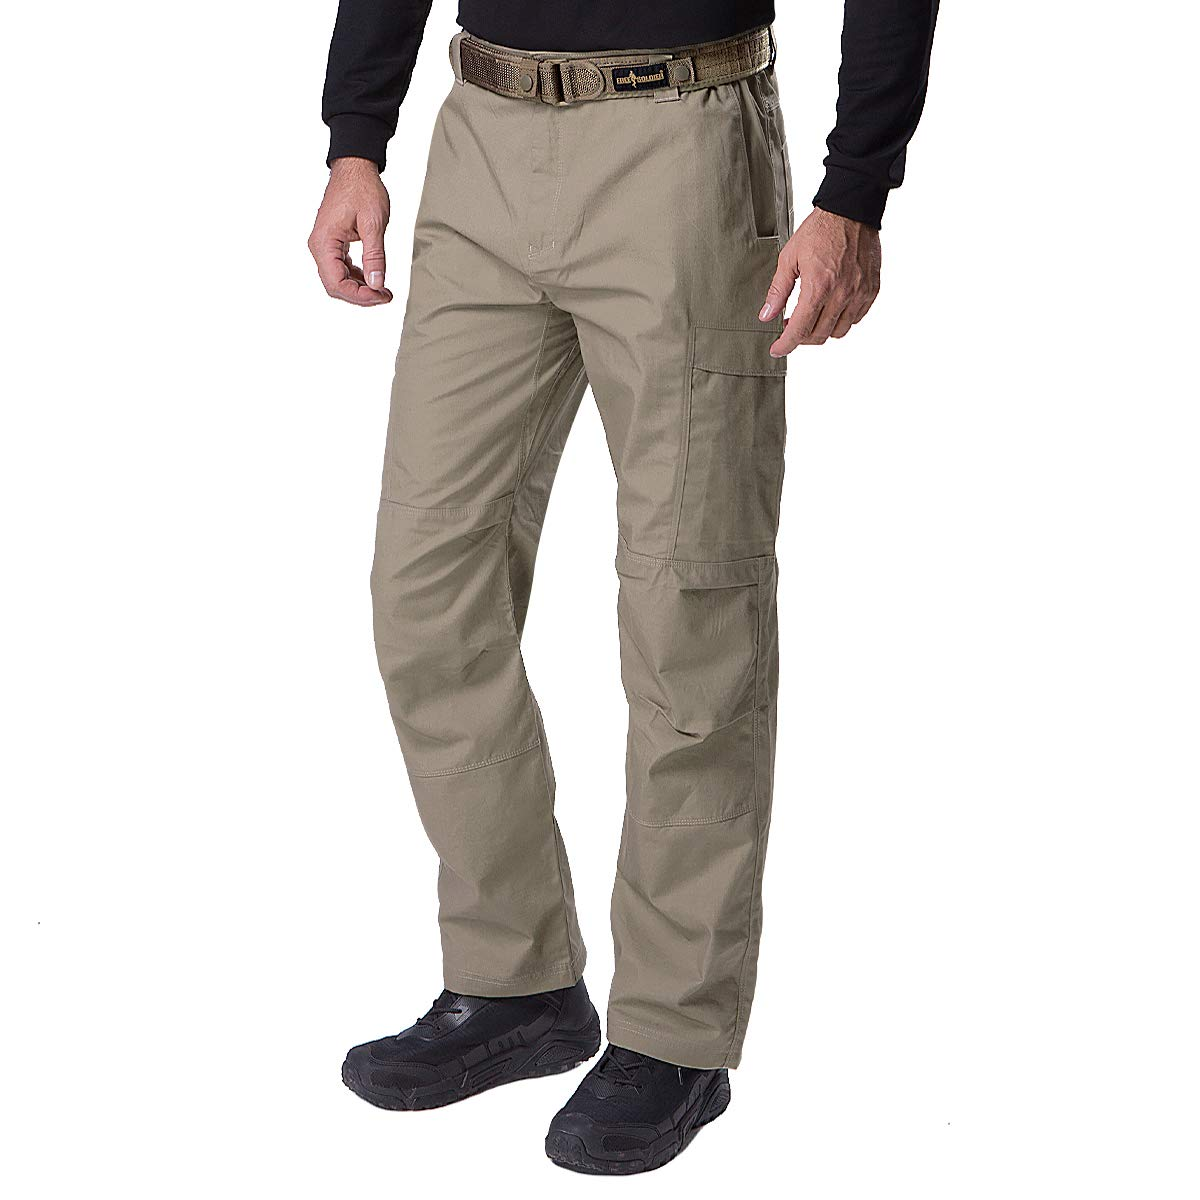 Men/'s Water Resistant Pants Relaxed Tactical Combat Army Work Pants Multi Pocket